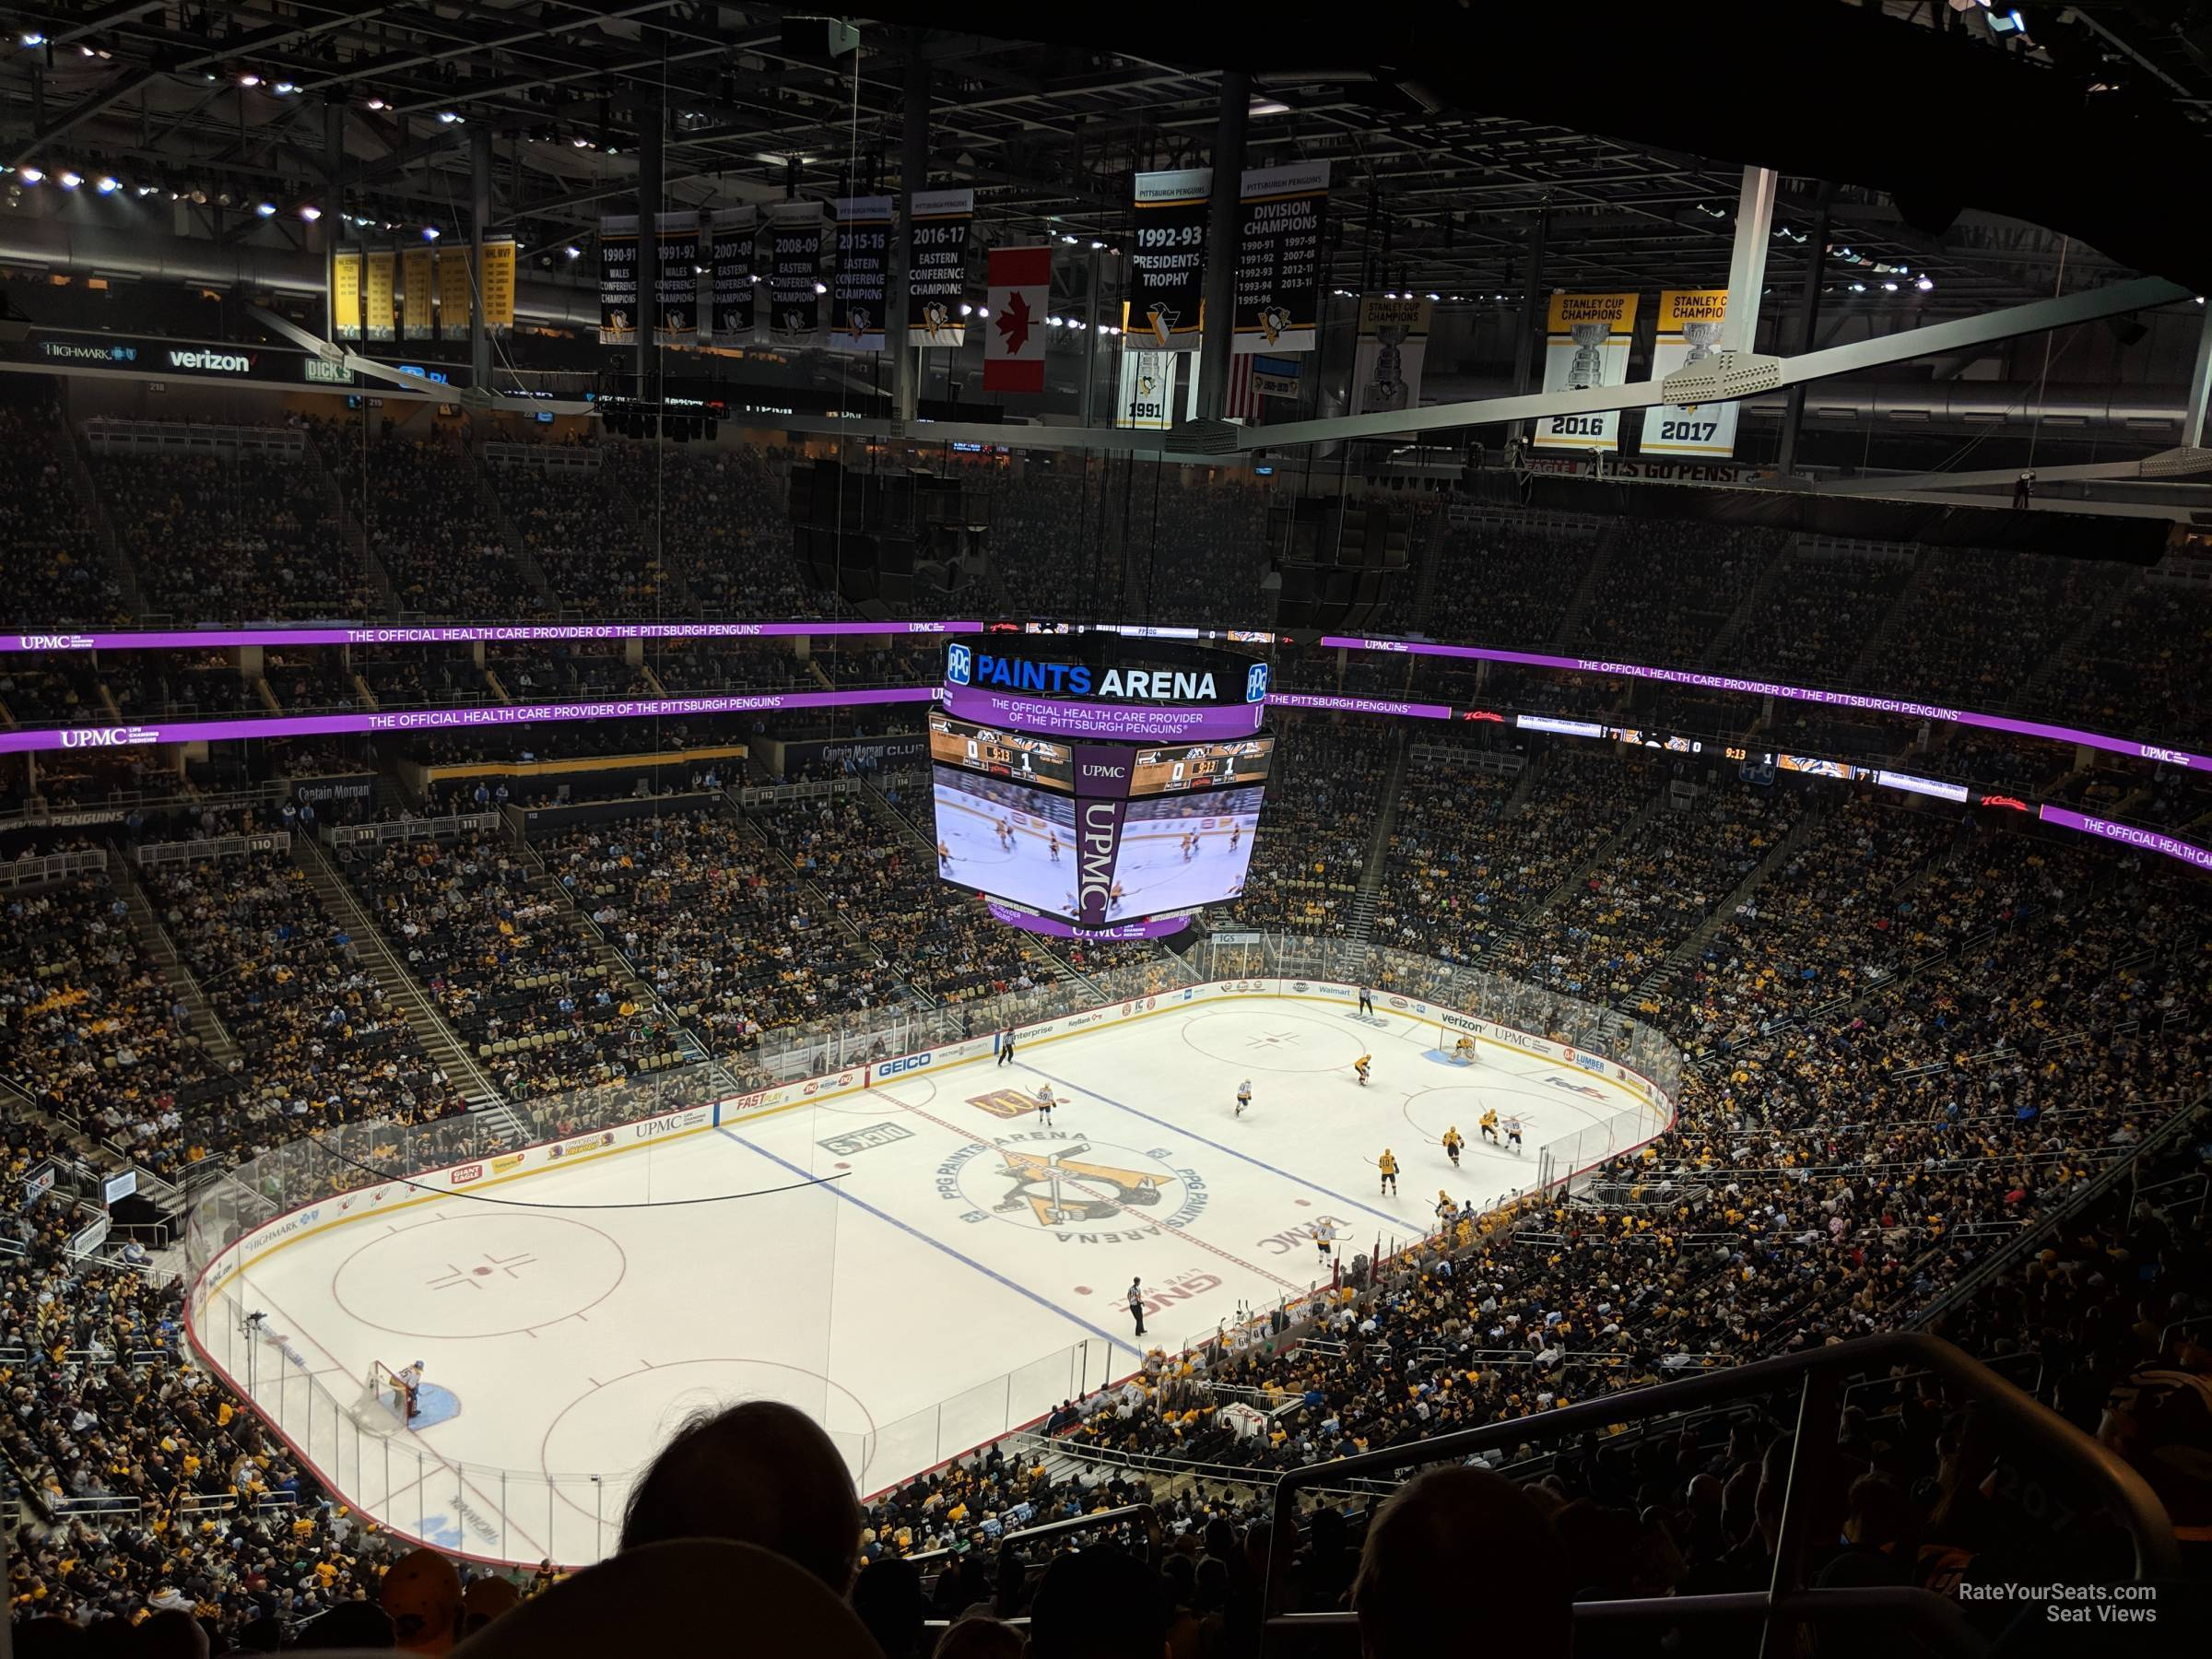 Section 207 seat view